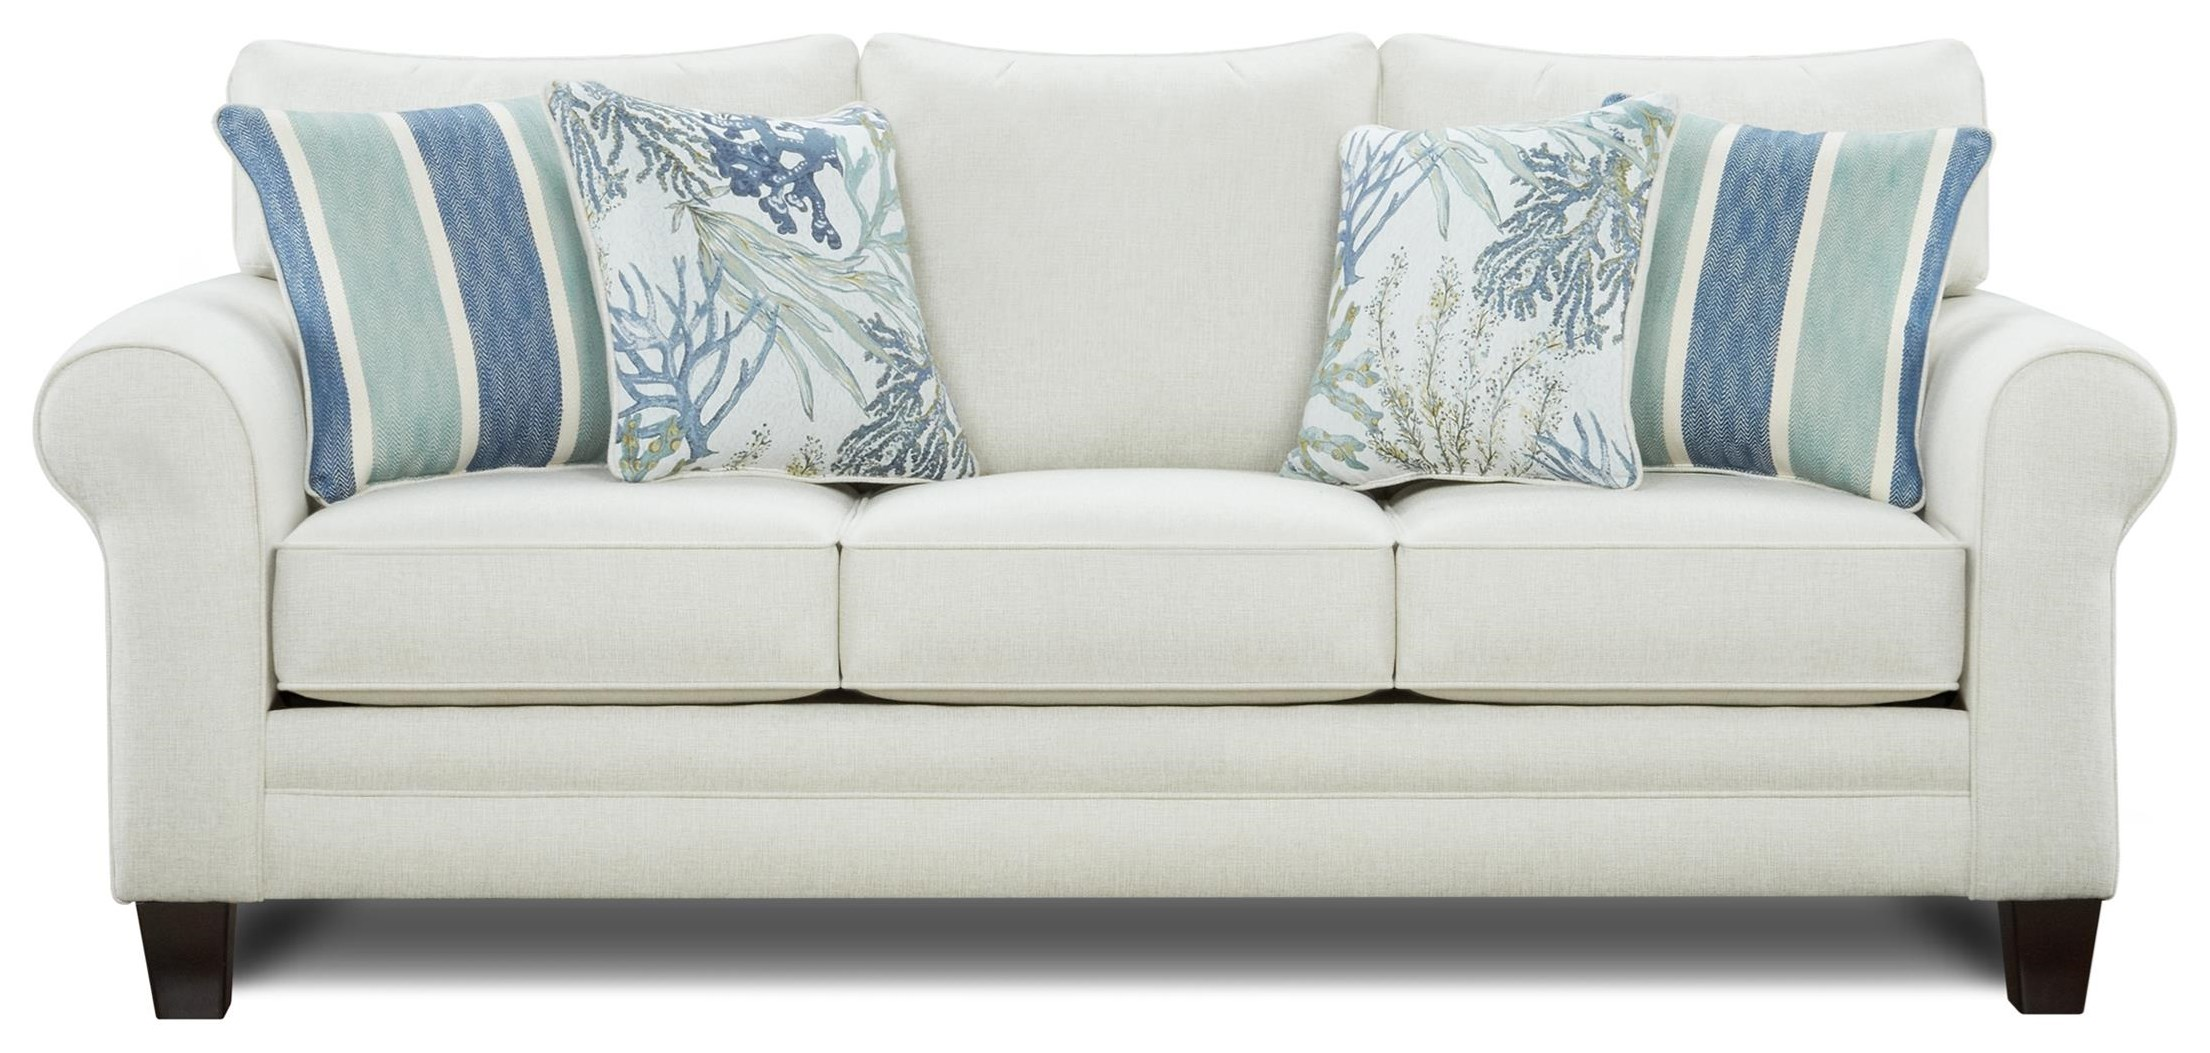 1140 Stationary Sofa w/ Accent Pillows by Kent Home Furnishings at Johnny Janosik